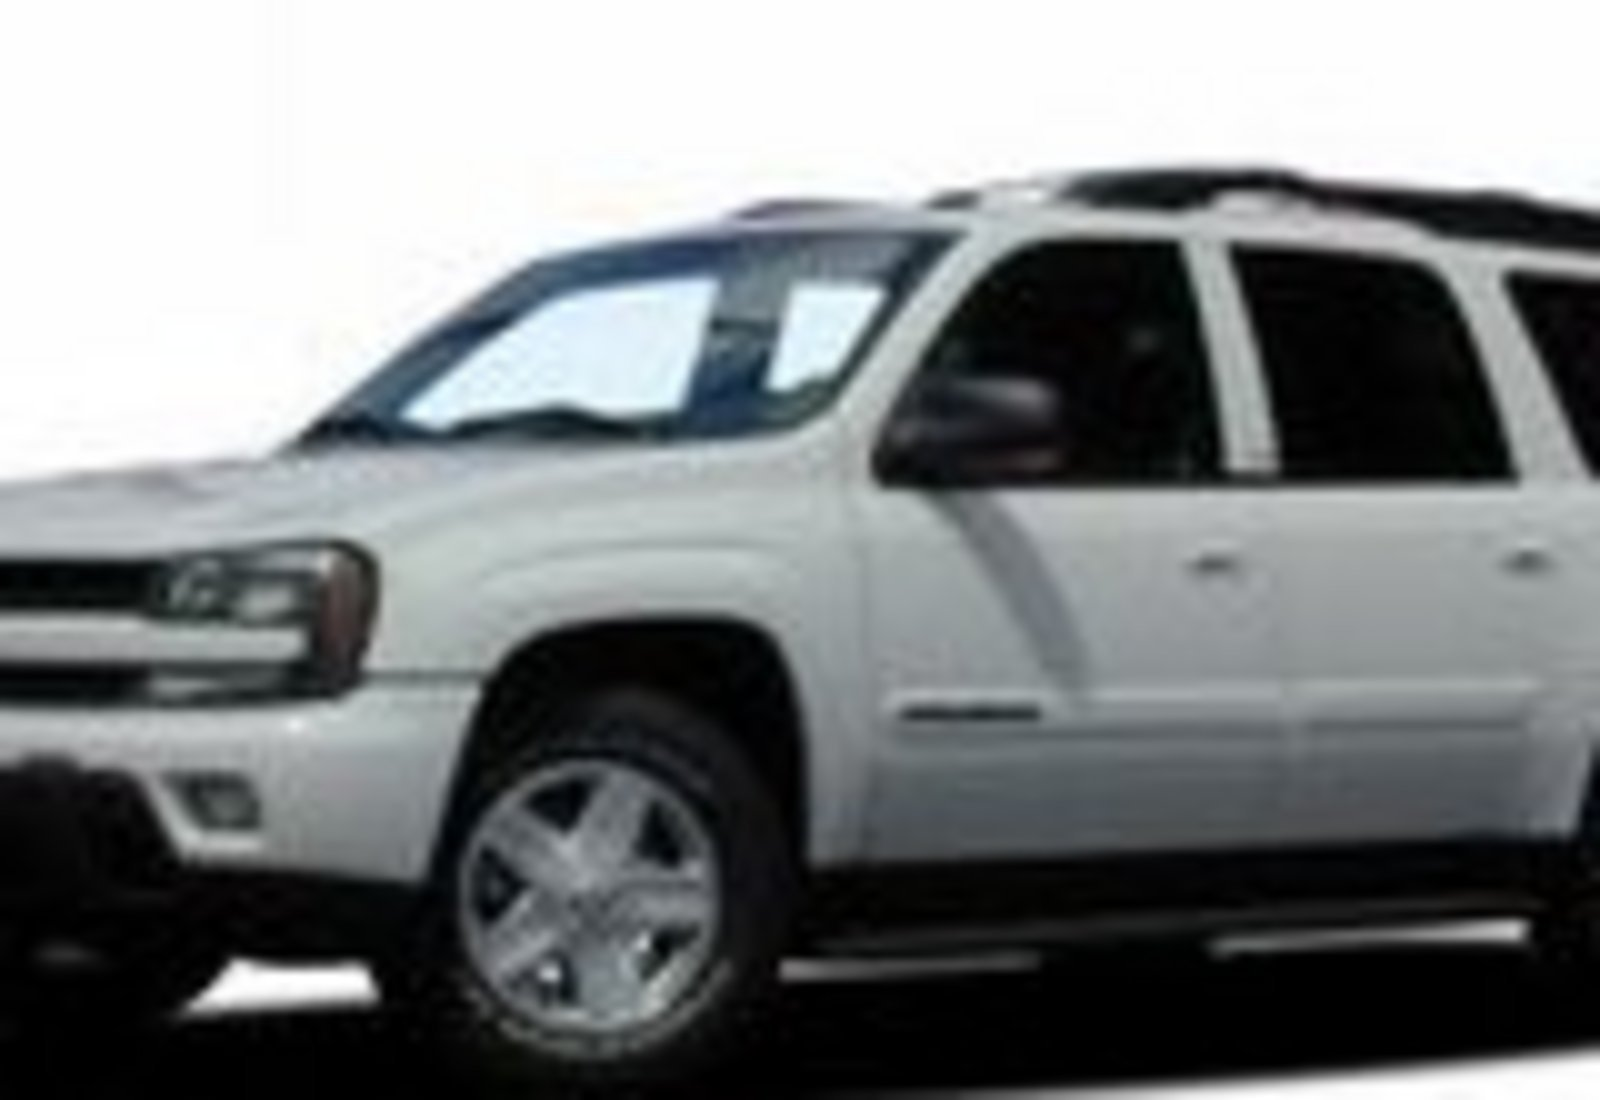 2006 Chevrolet Trailblazer Review - Top Speed